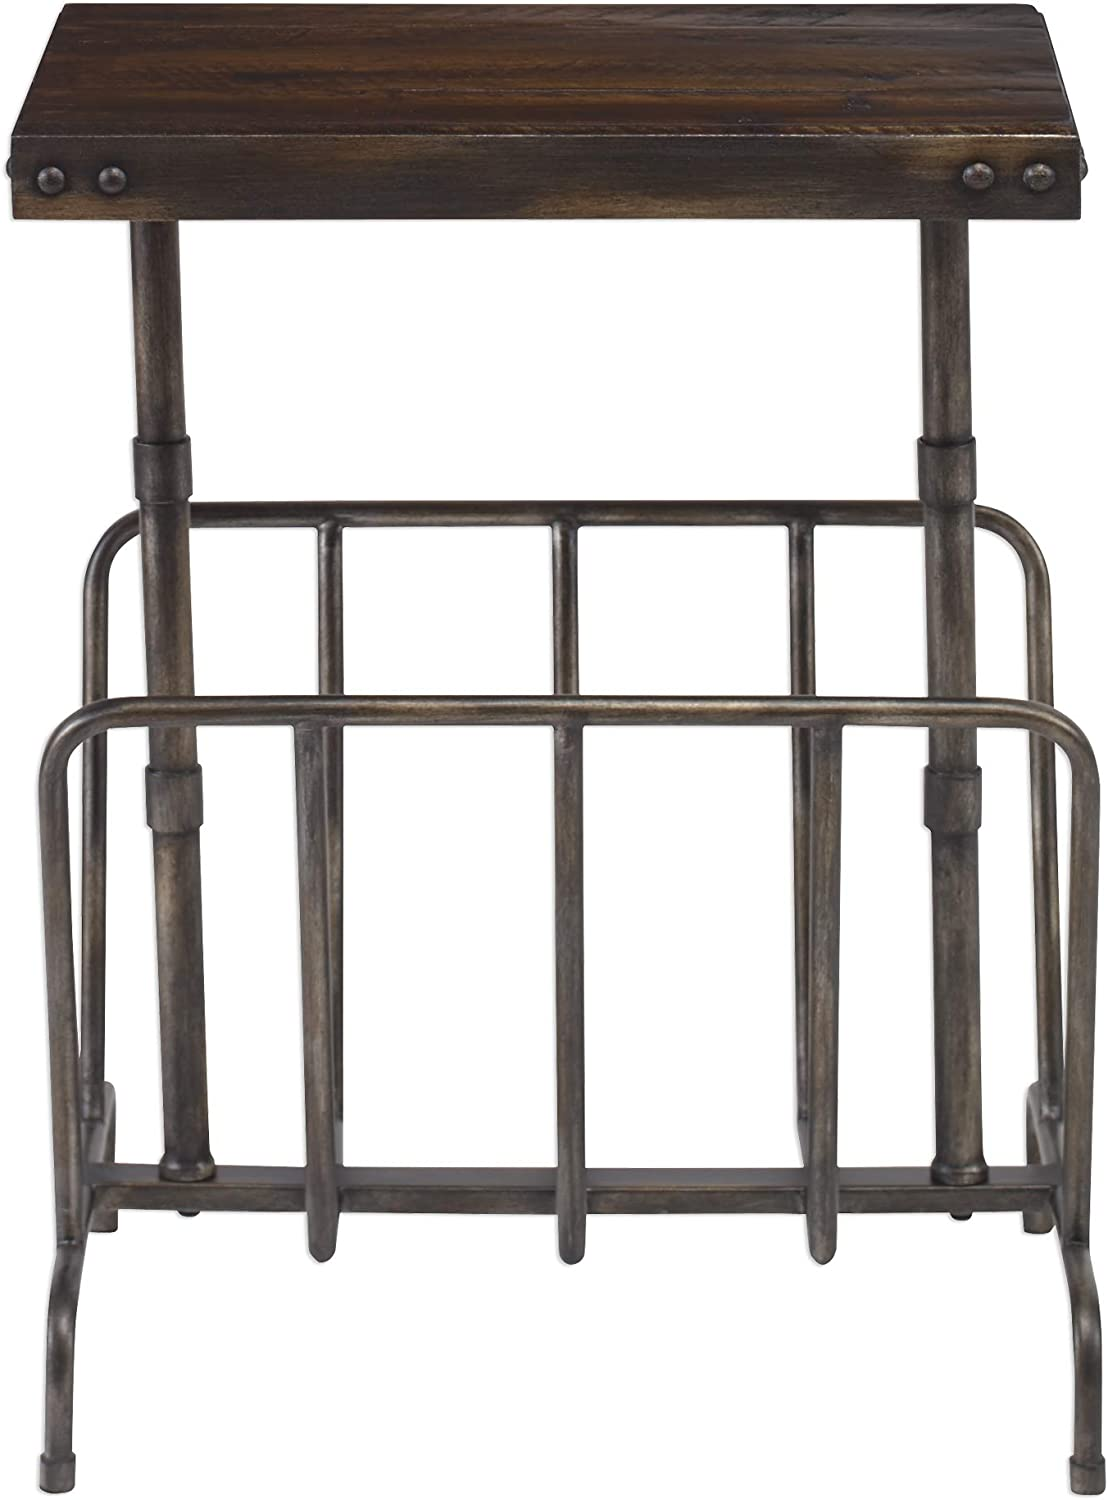 MY SWANKY HOME Retro Industrial Iron Wood Accent Table Magazine Rack | MidCentury Vintage Style